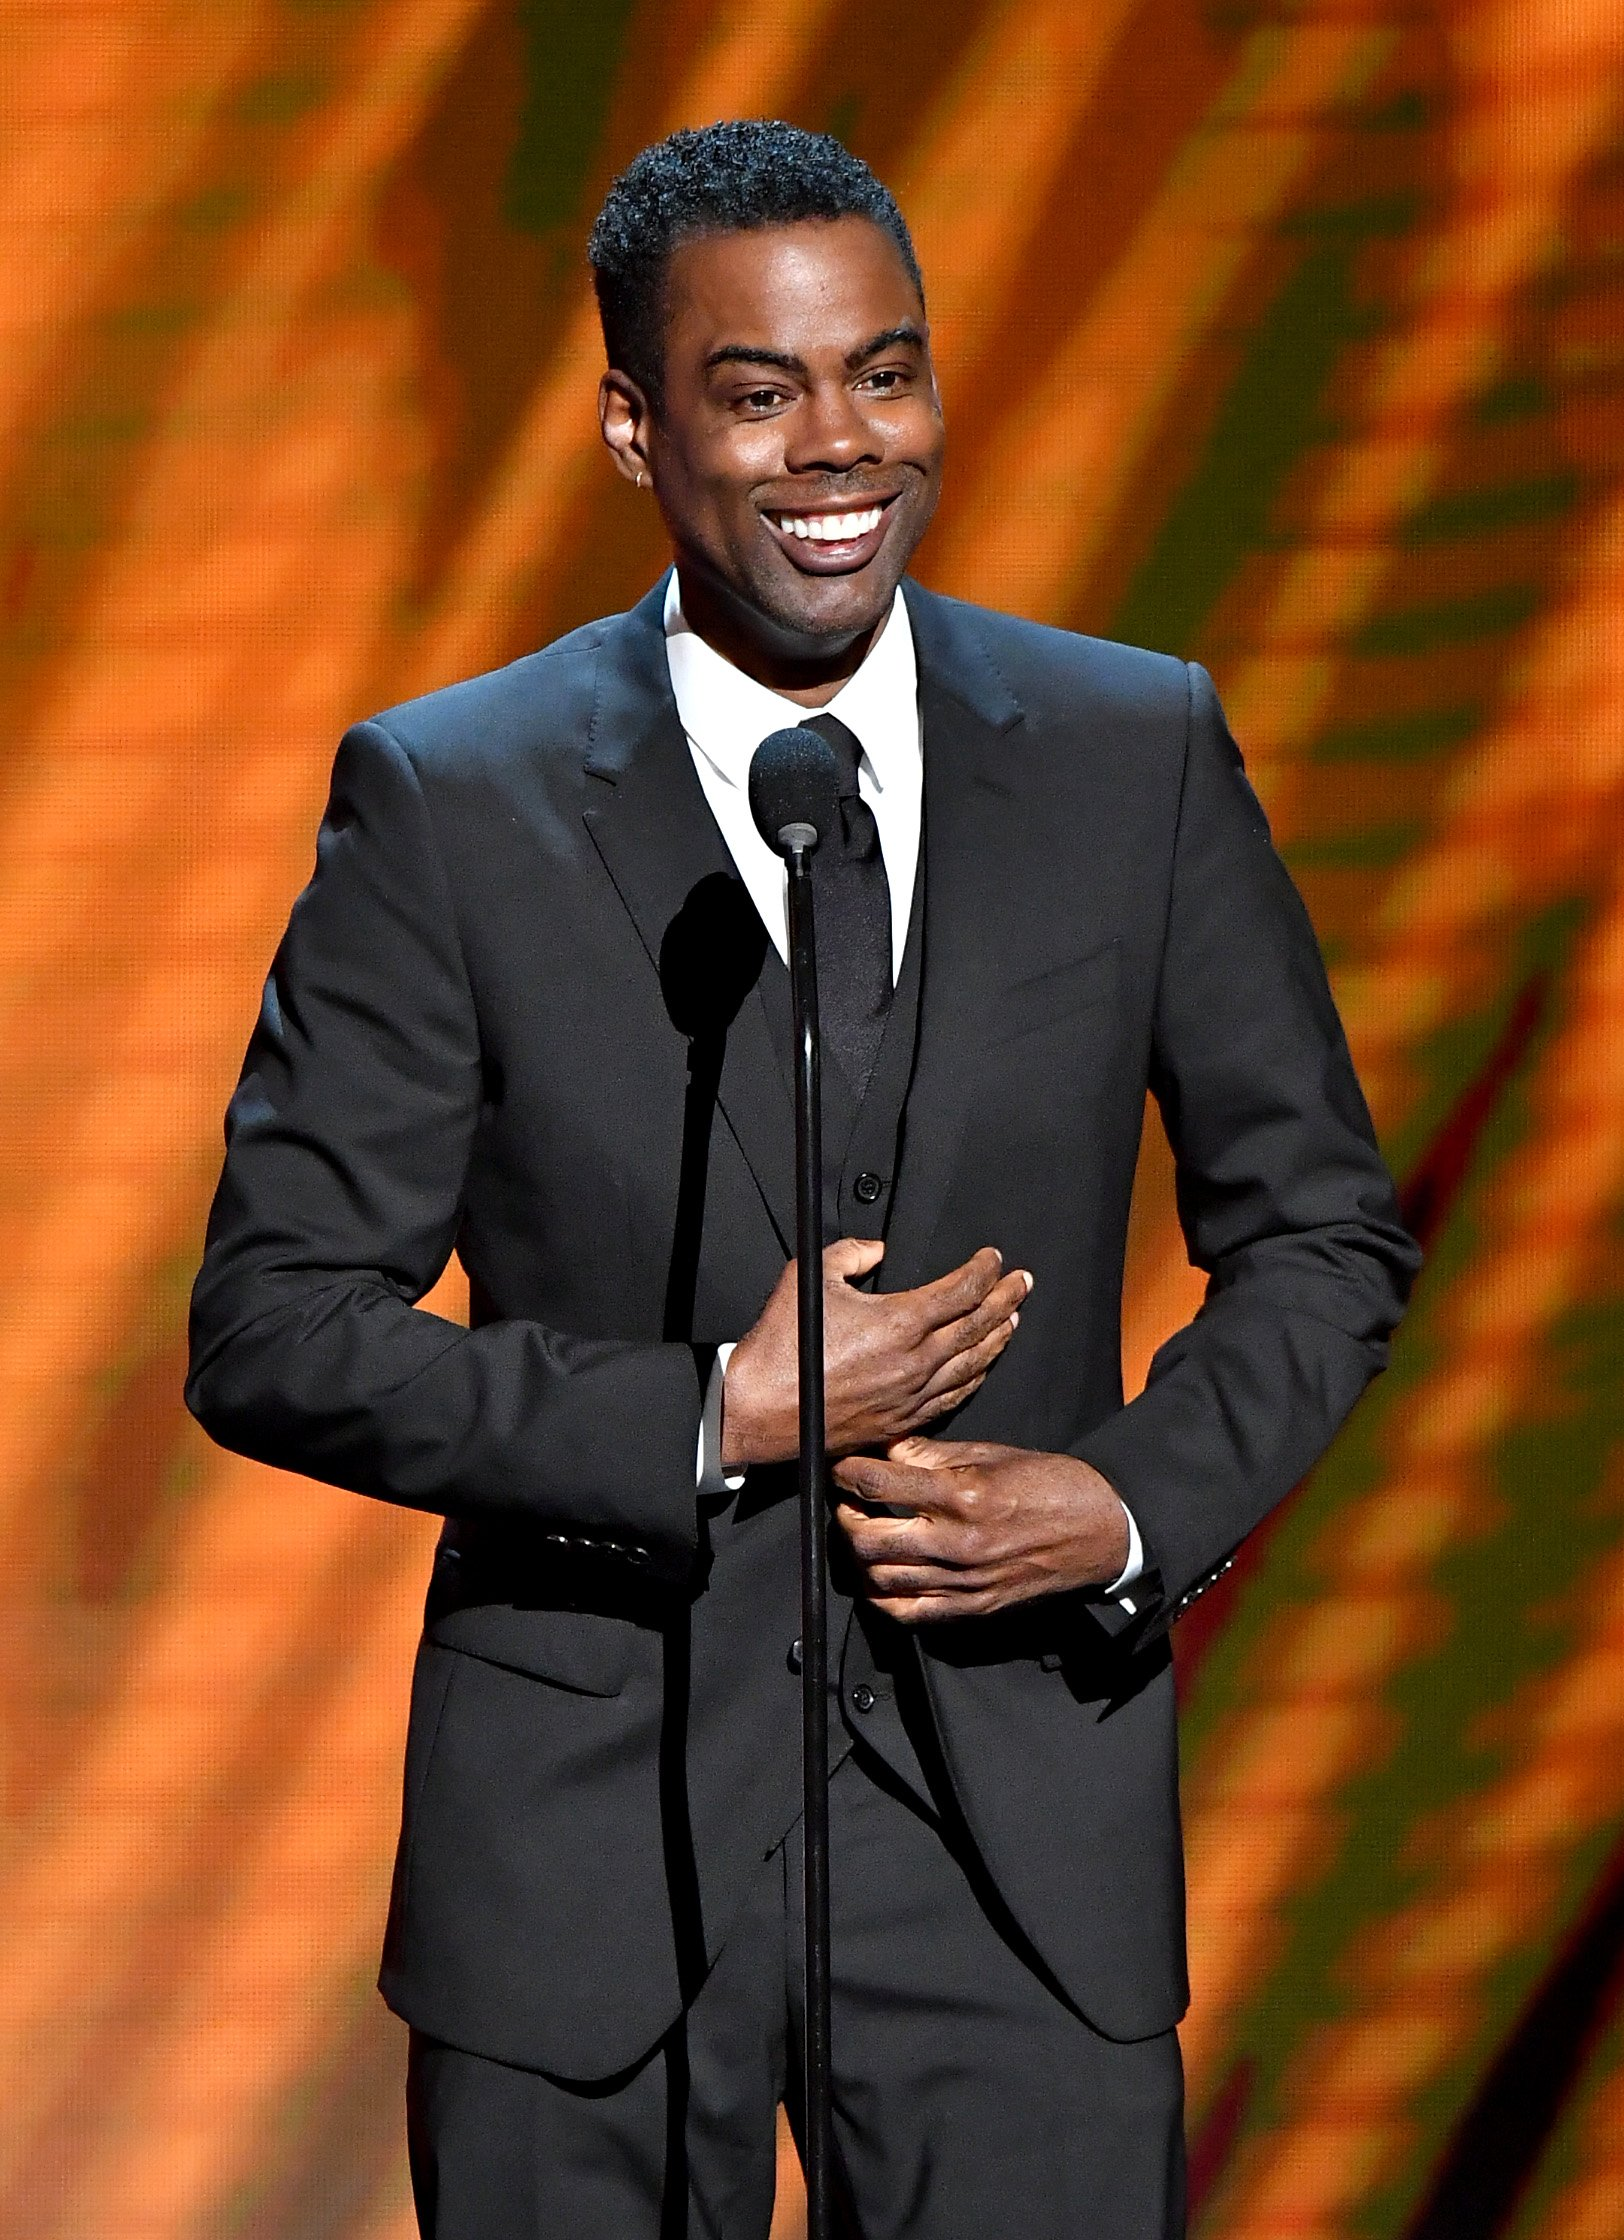 Chris Rock at the 50th NAACP Image Awards at Dolby Theatre on March 30, 2019 in Hollywood, California. | Source: Getty Images